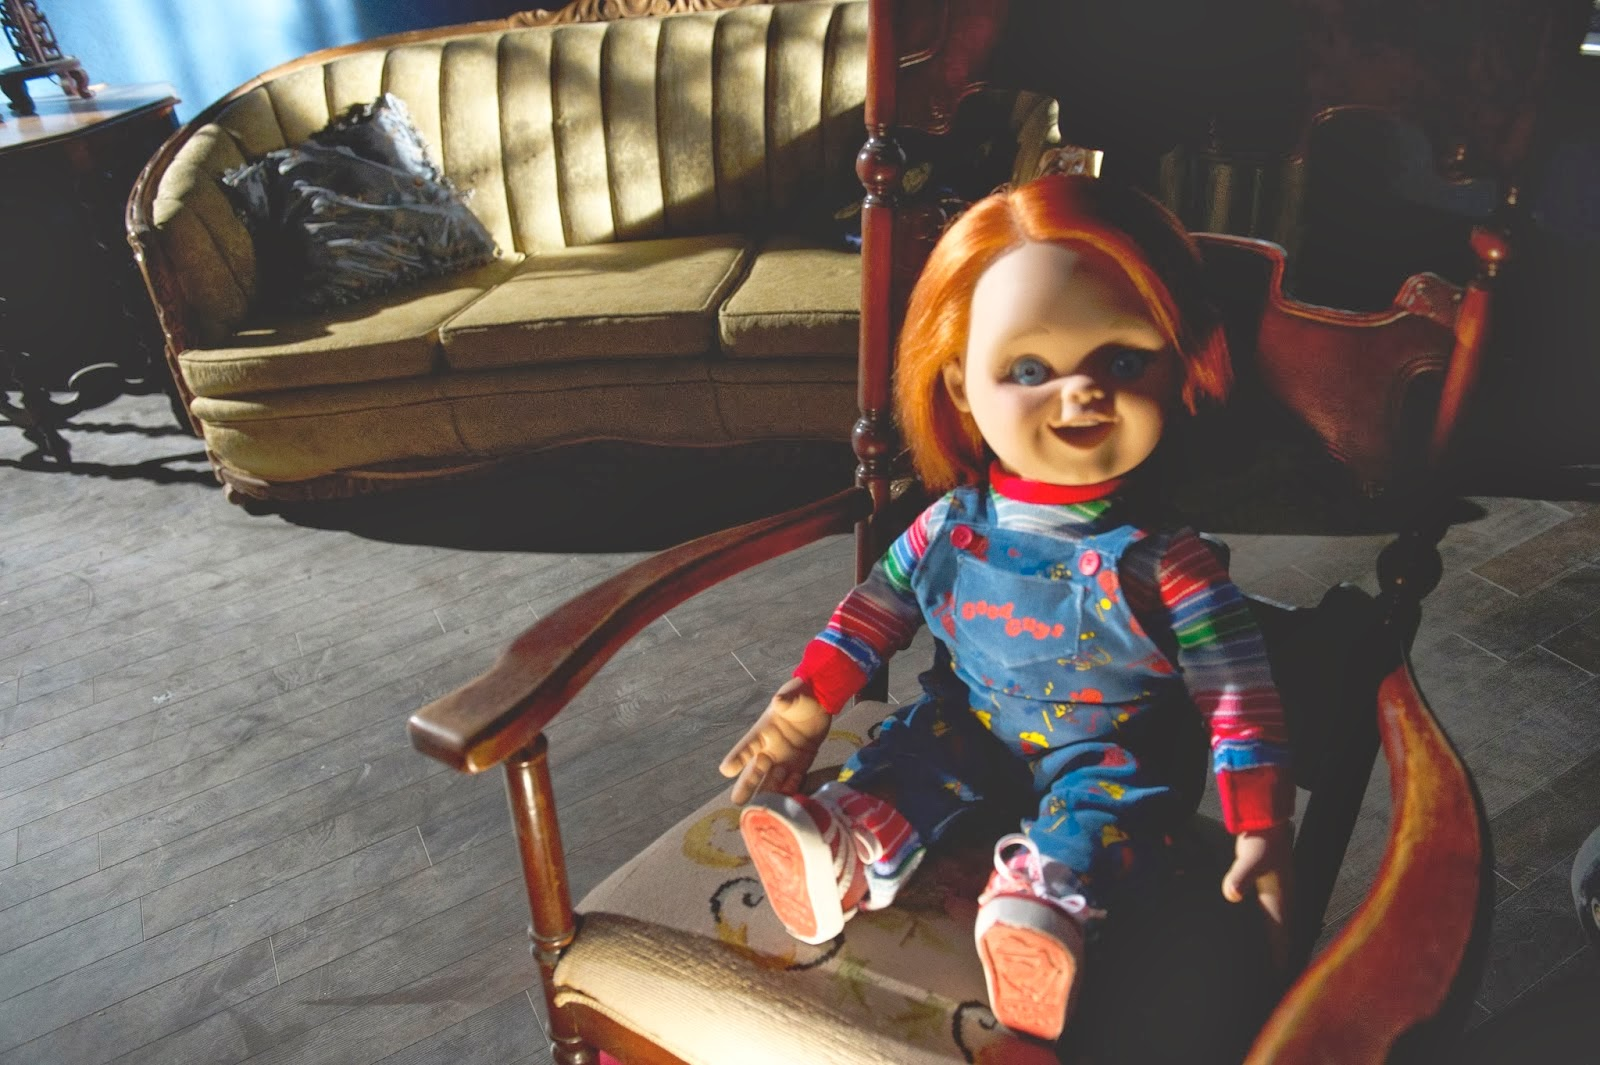 The deadly doll 39 s house of horror nonsense you can 39 t keep for 13th floor with diana live dvd